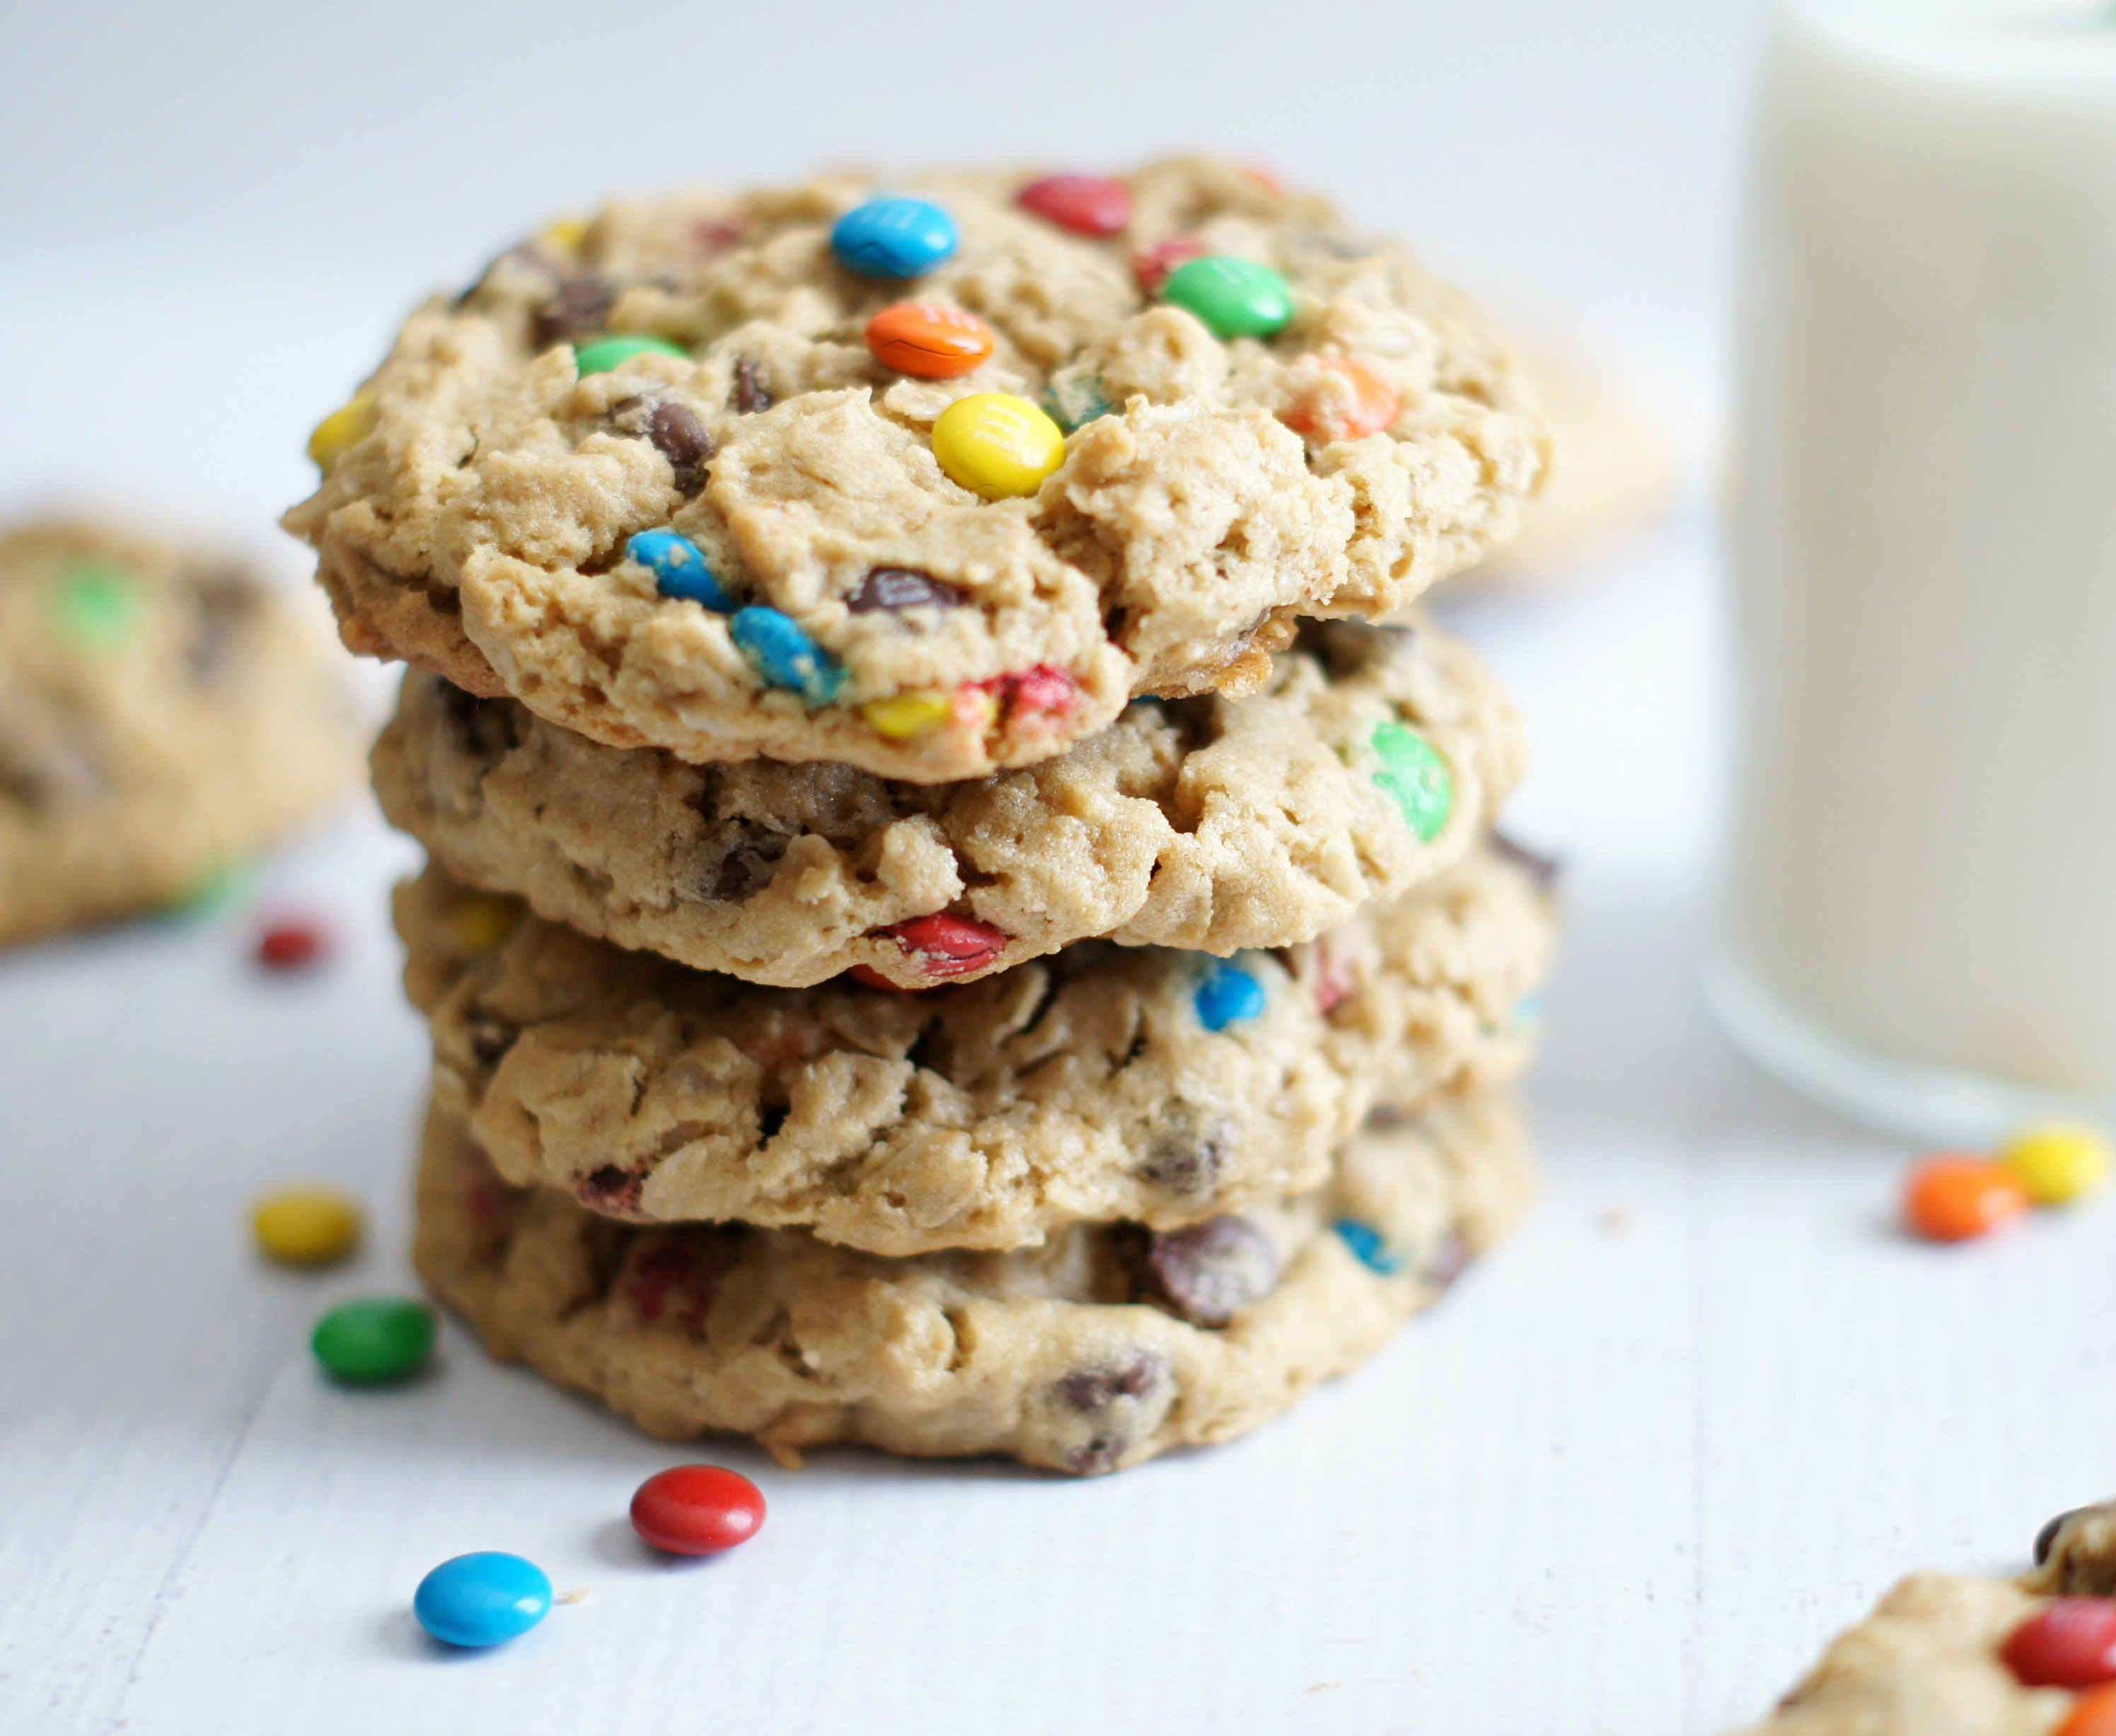 M&m Chocolate Chip Monster Cookies  5 Boys Baker. Clogged Arteries Signs Of Stroke. Printing Signs Of Stroke. Mmp 9 Signs. Common Signs Of Stroke. Equilateral Signs. Facial Palsy Signs Of Stroke. Diabetes Mellitus Signs. Water Contamination Signs